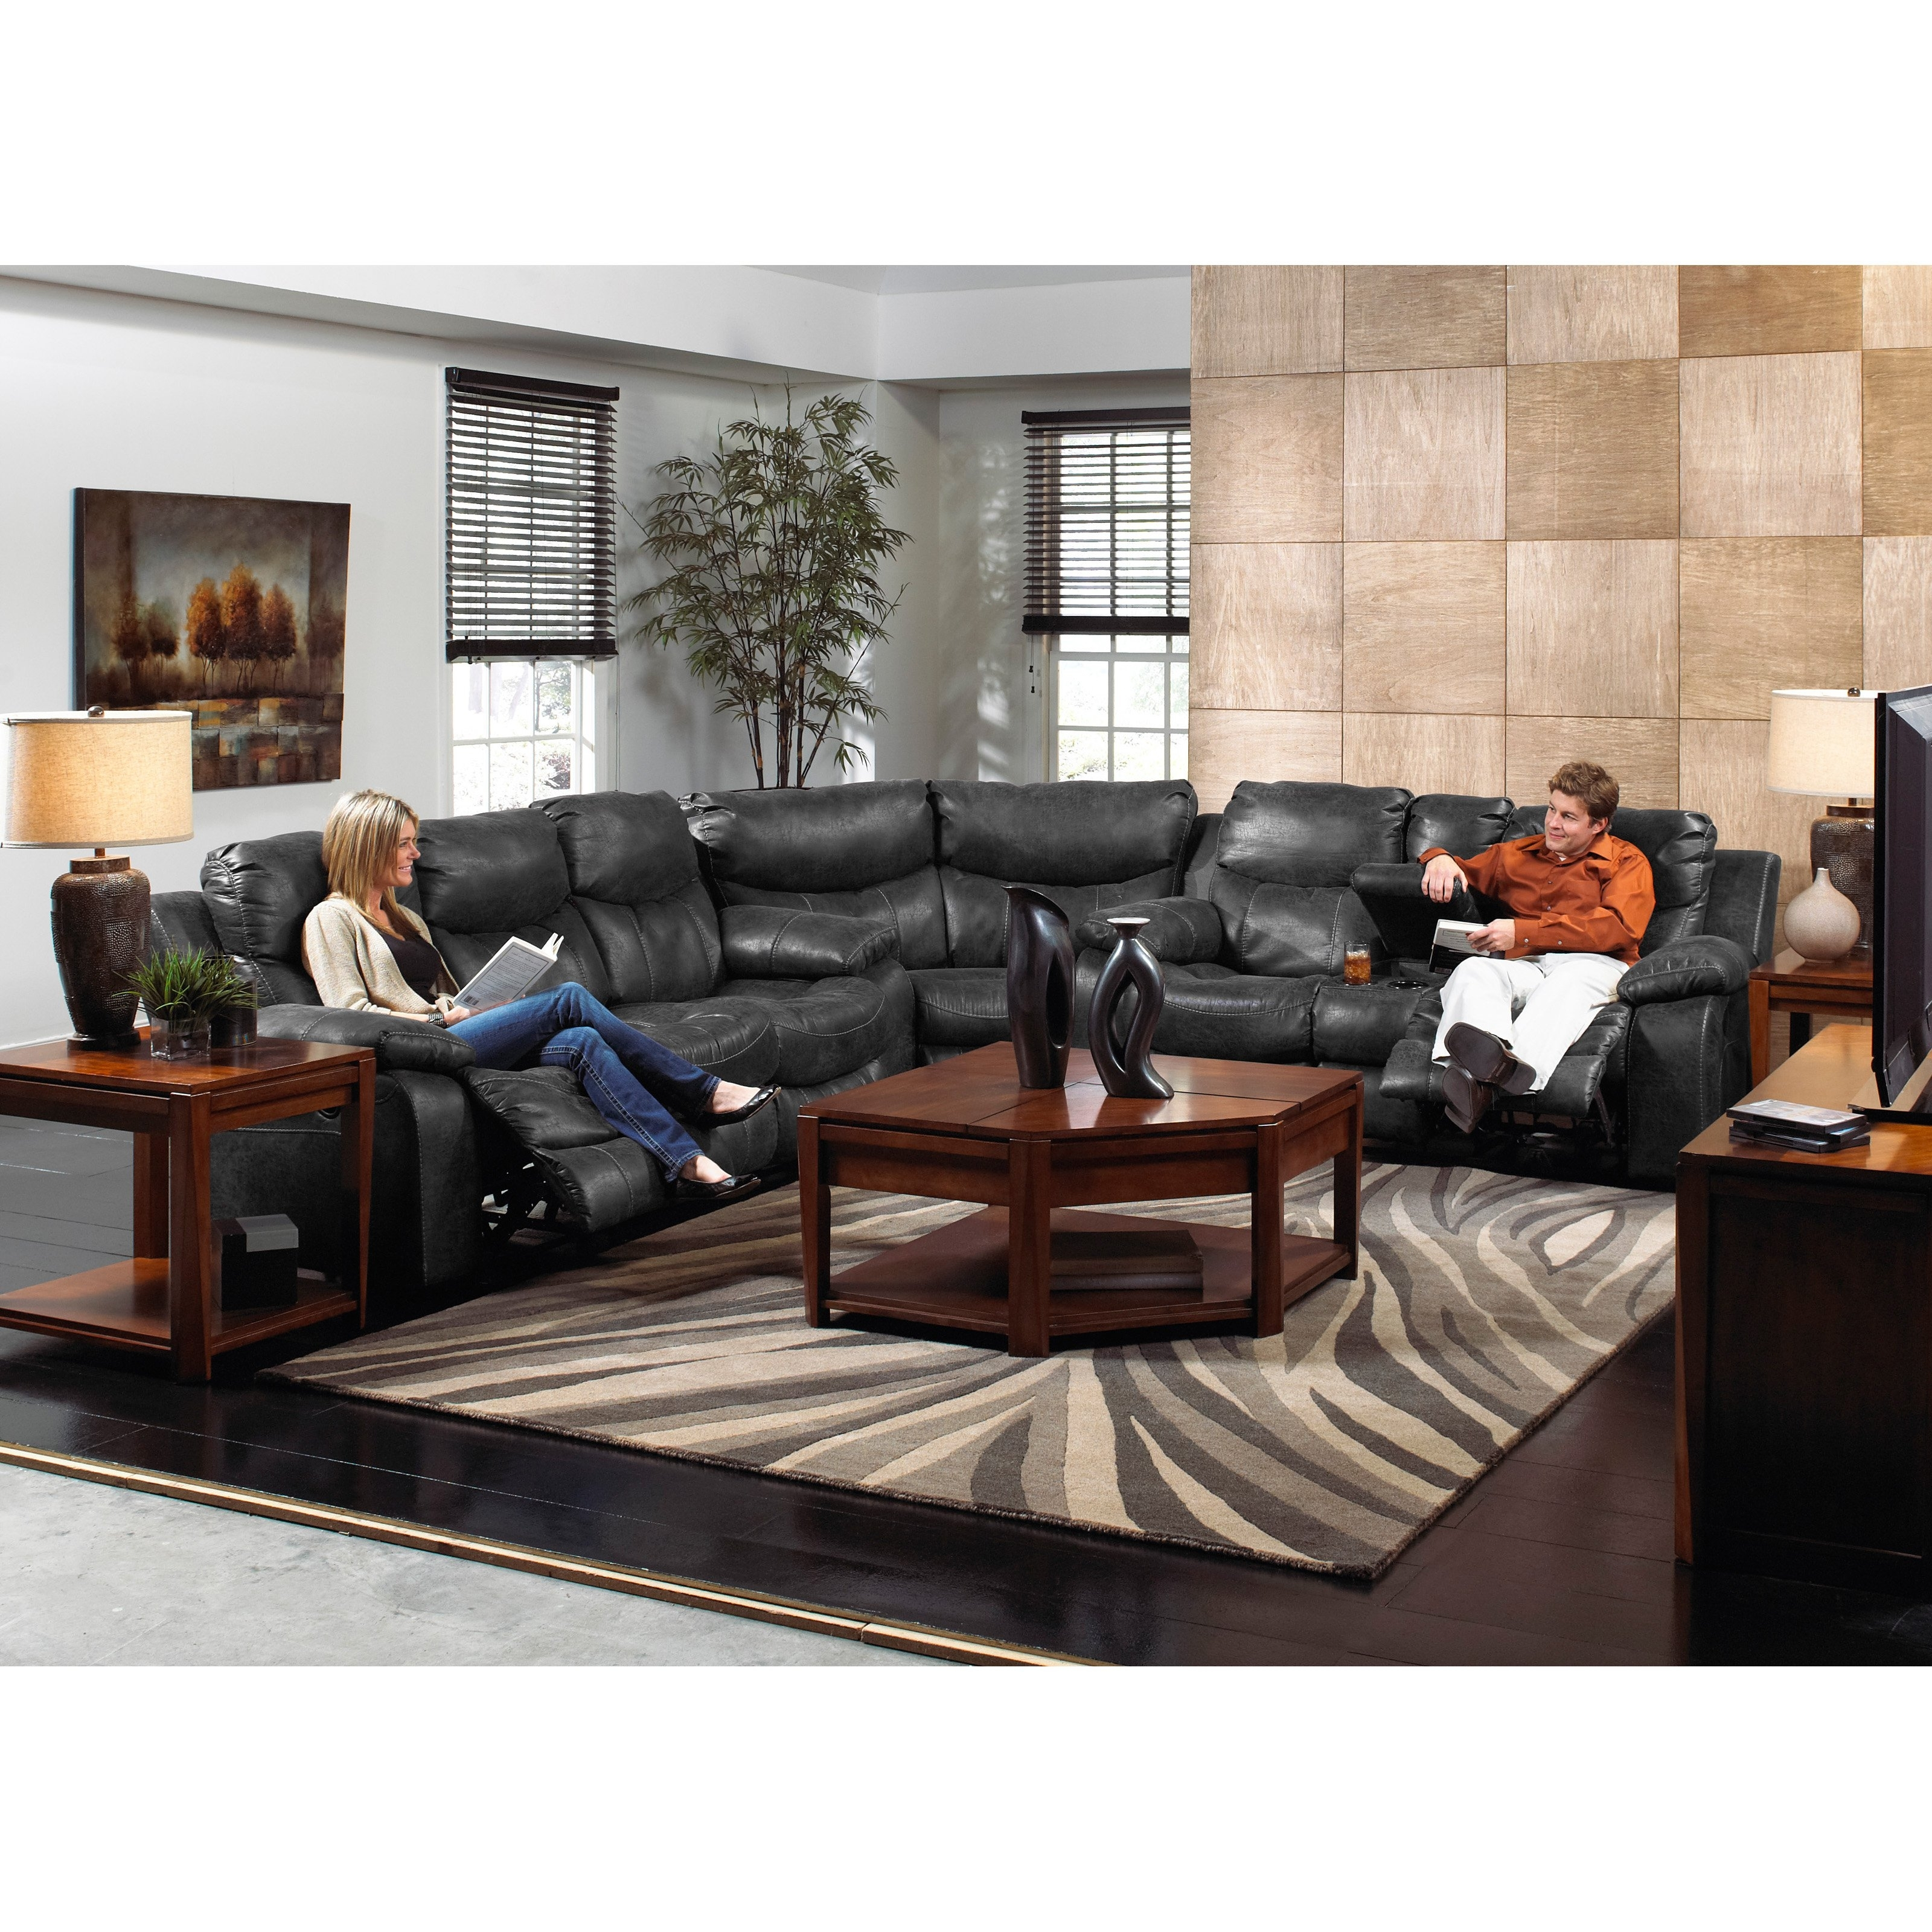 Gray Leather Reclining Sectional Inside Clyde Grey Leather 3 Piece Power Reclining Sectionals With Pwr Hdrst & Usb (Image 6 of 25)